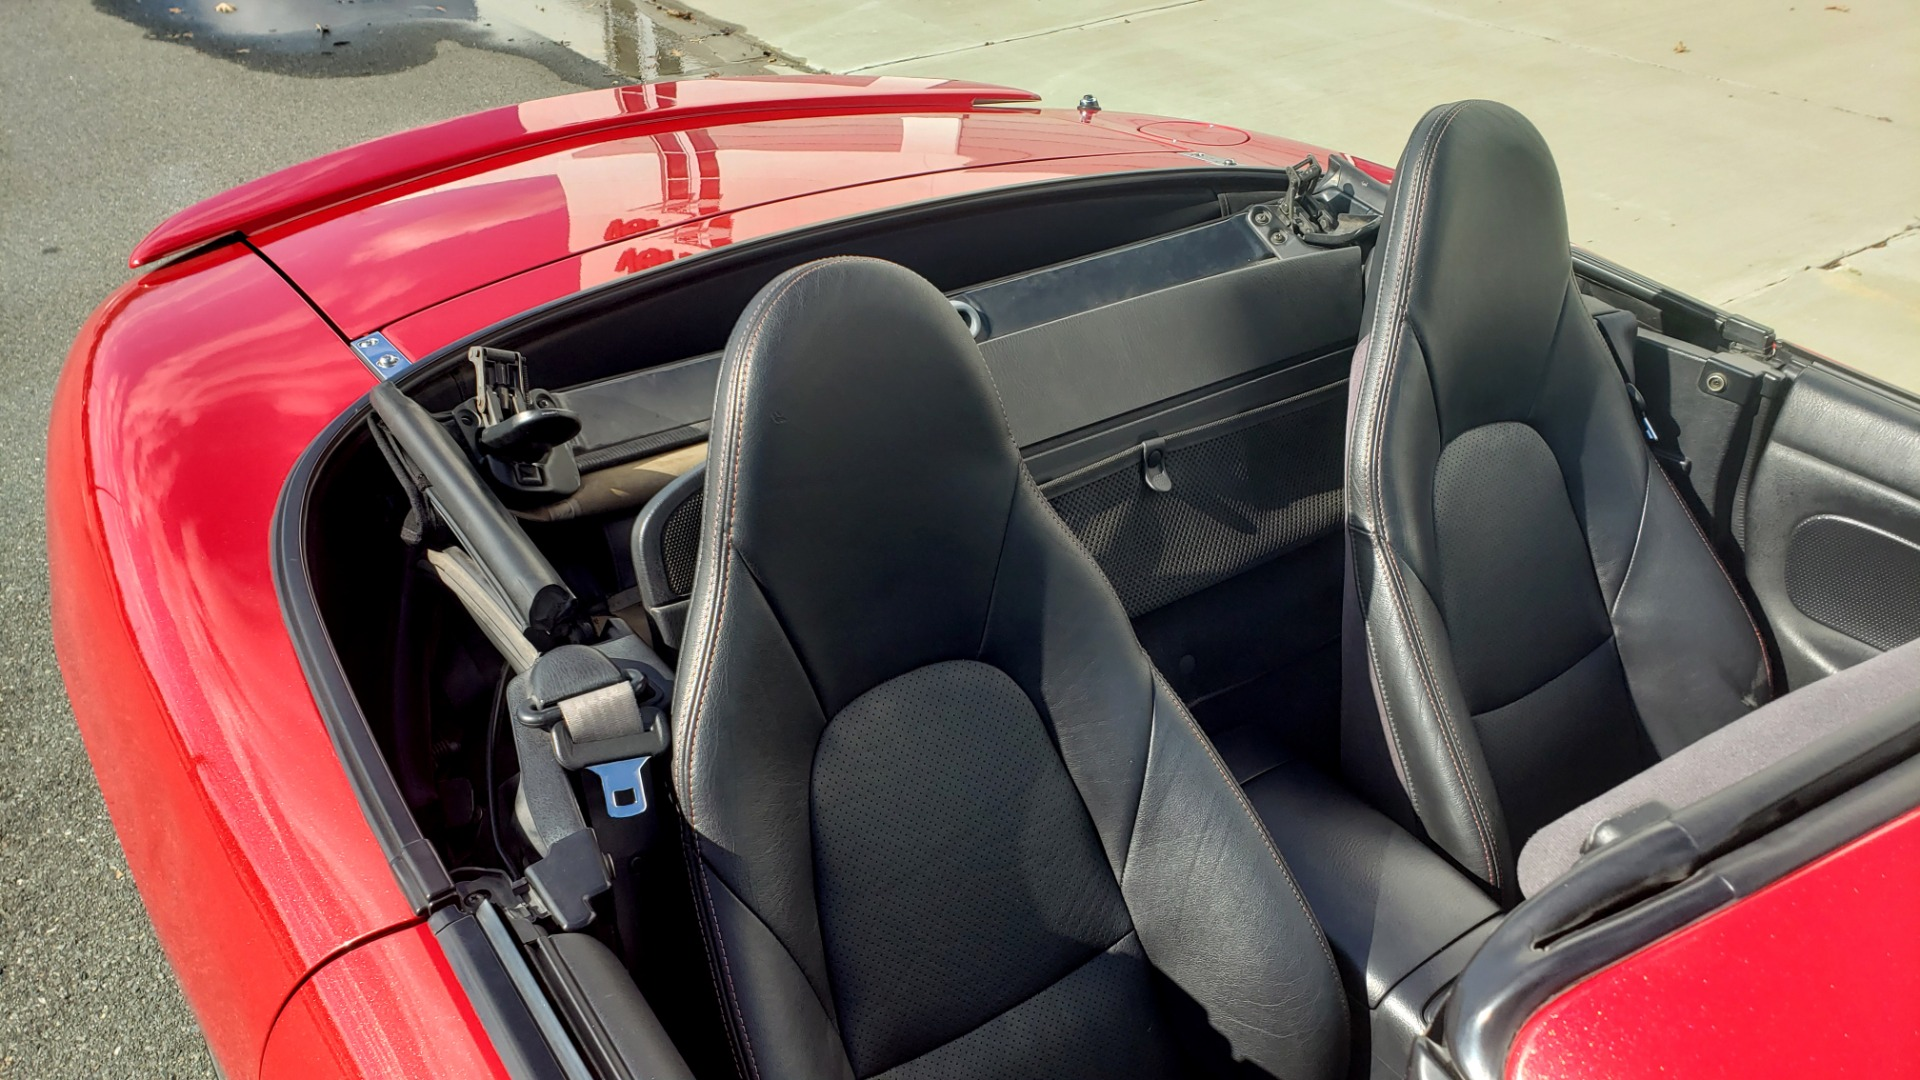 Used 2004 Mazda MX-5 MIATA 2DR CONVERTIBLE MAZDASPEED / GRAND TOURING PKG for sale Sold at Formula Imports in Charlotte NC 28227 43